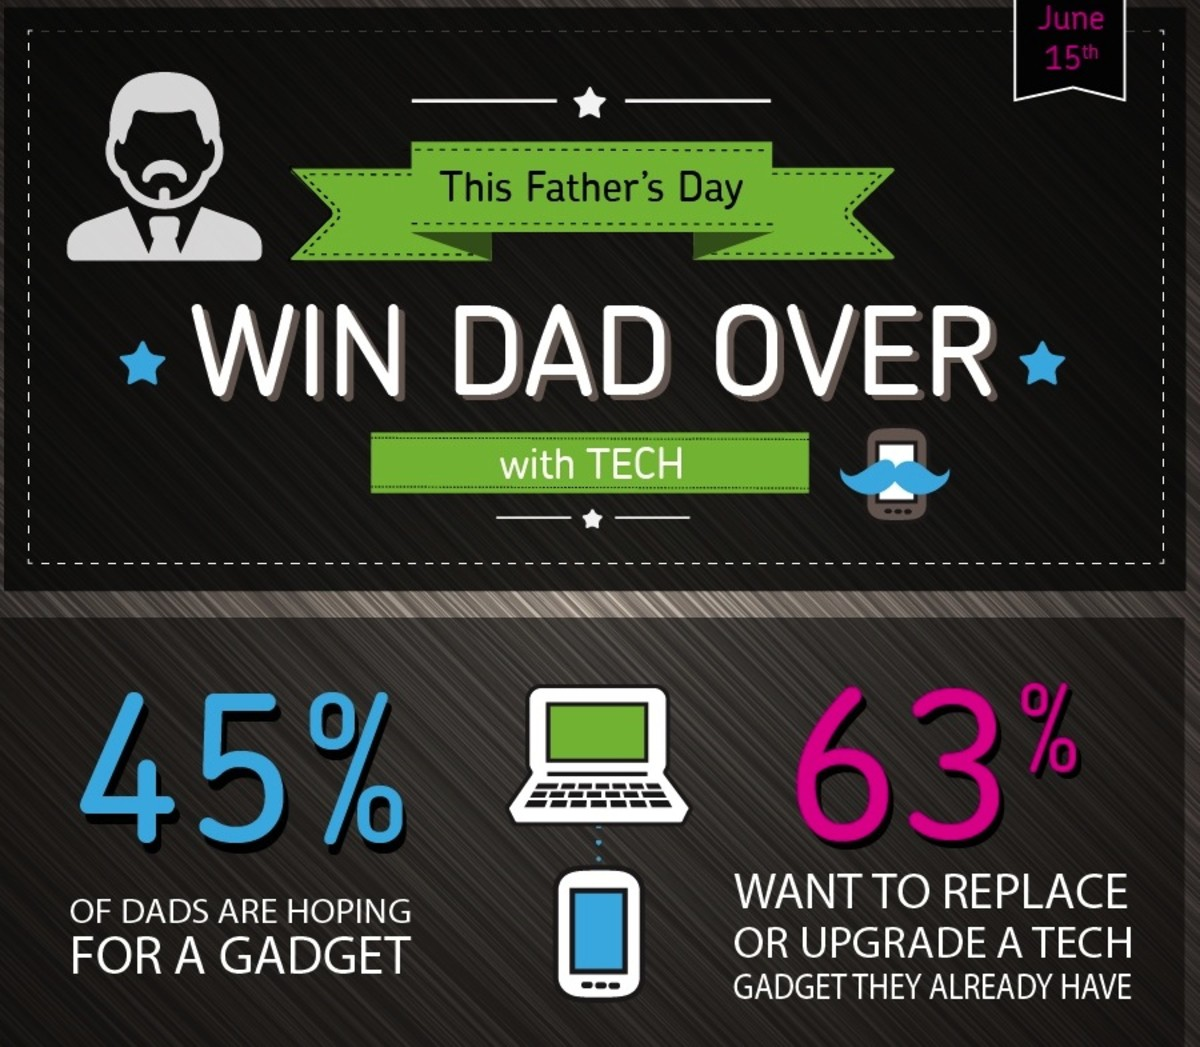 Tech Gifts for Father's Day